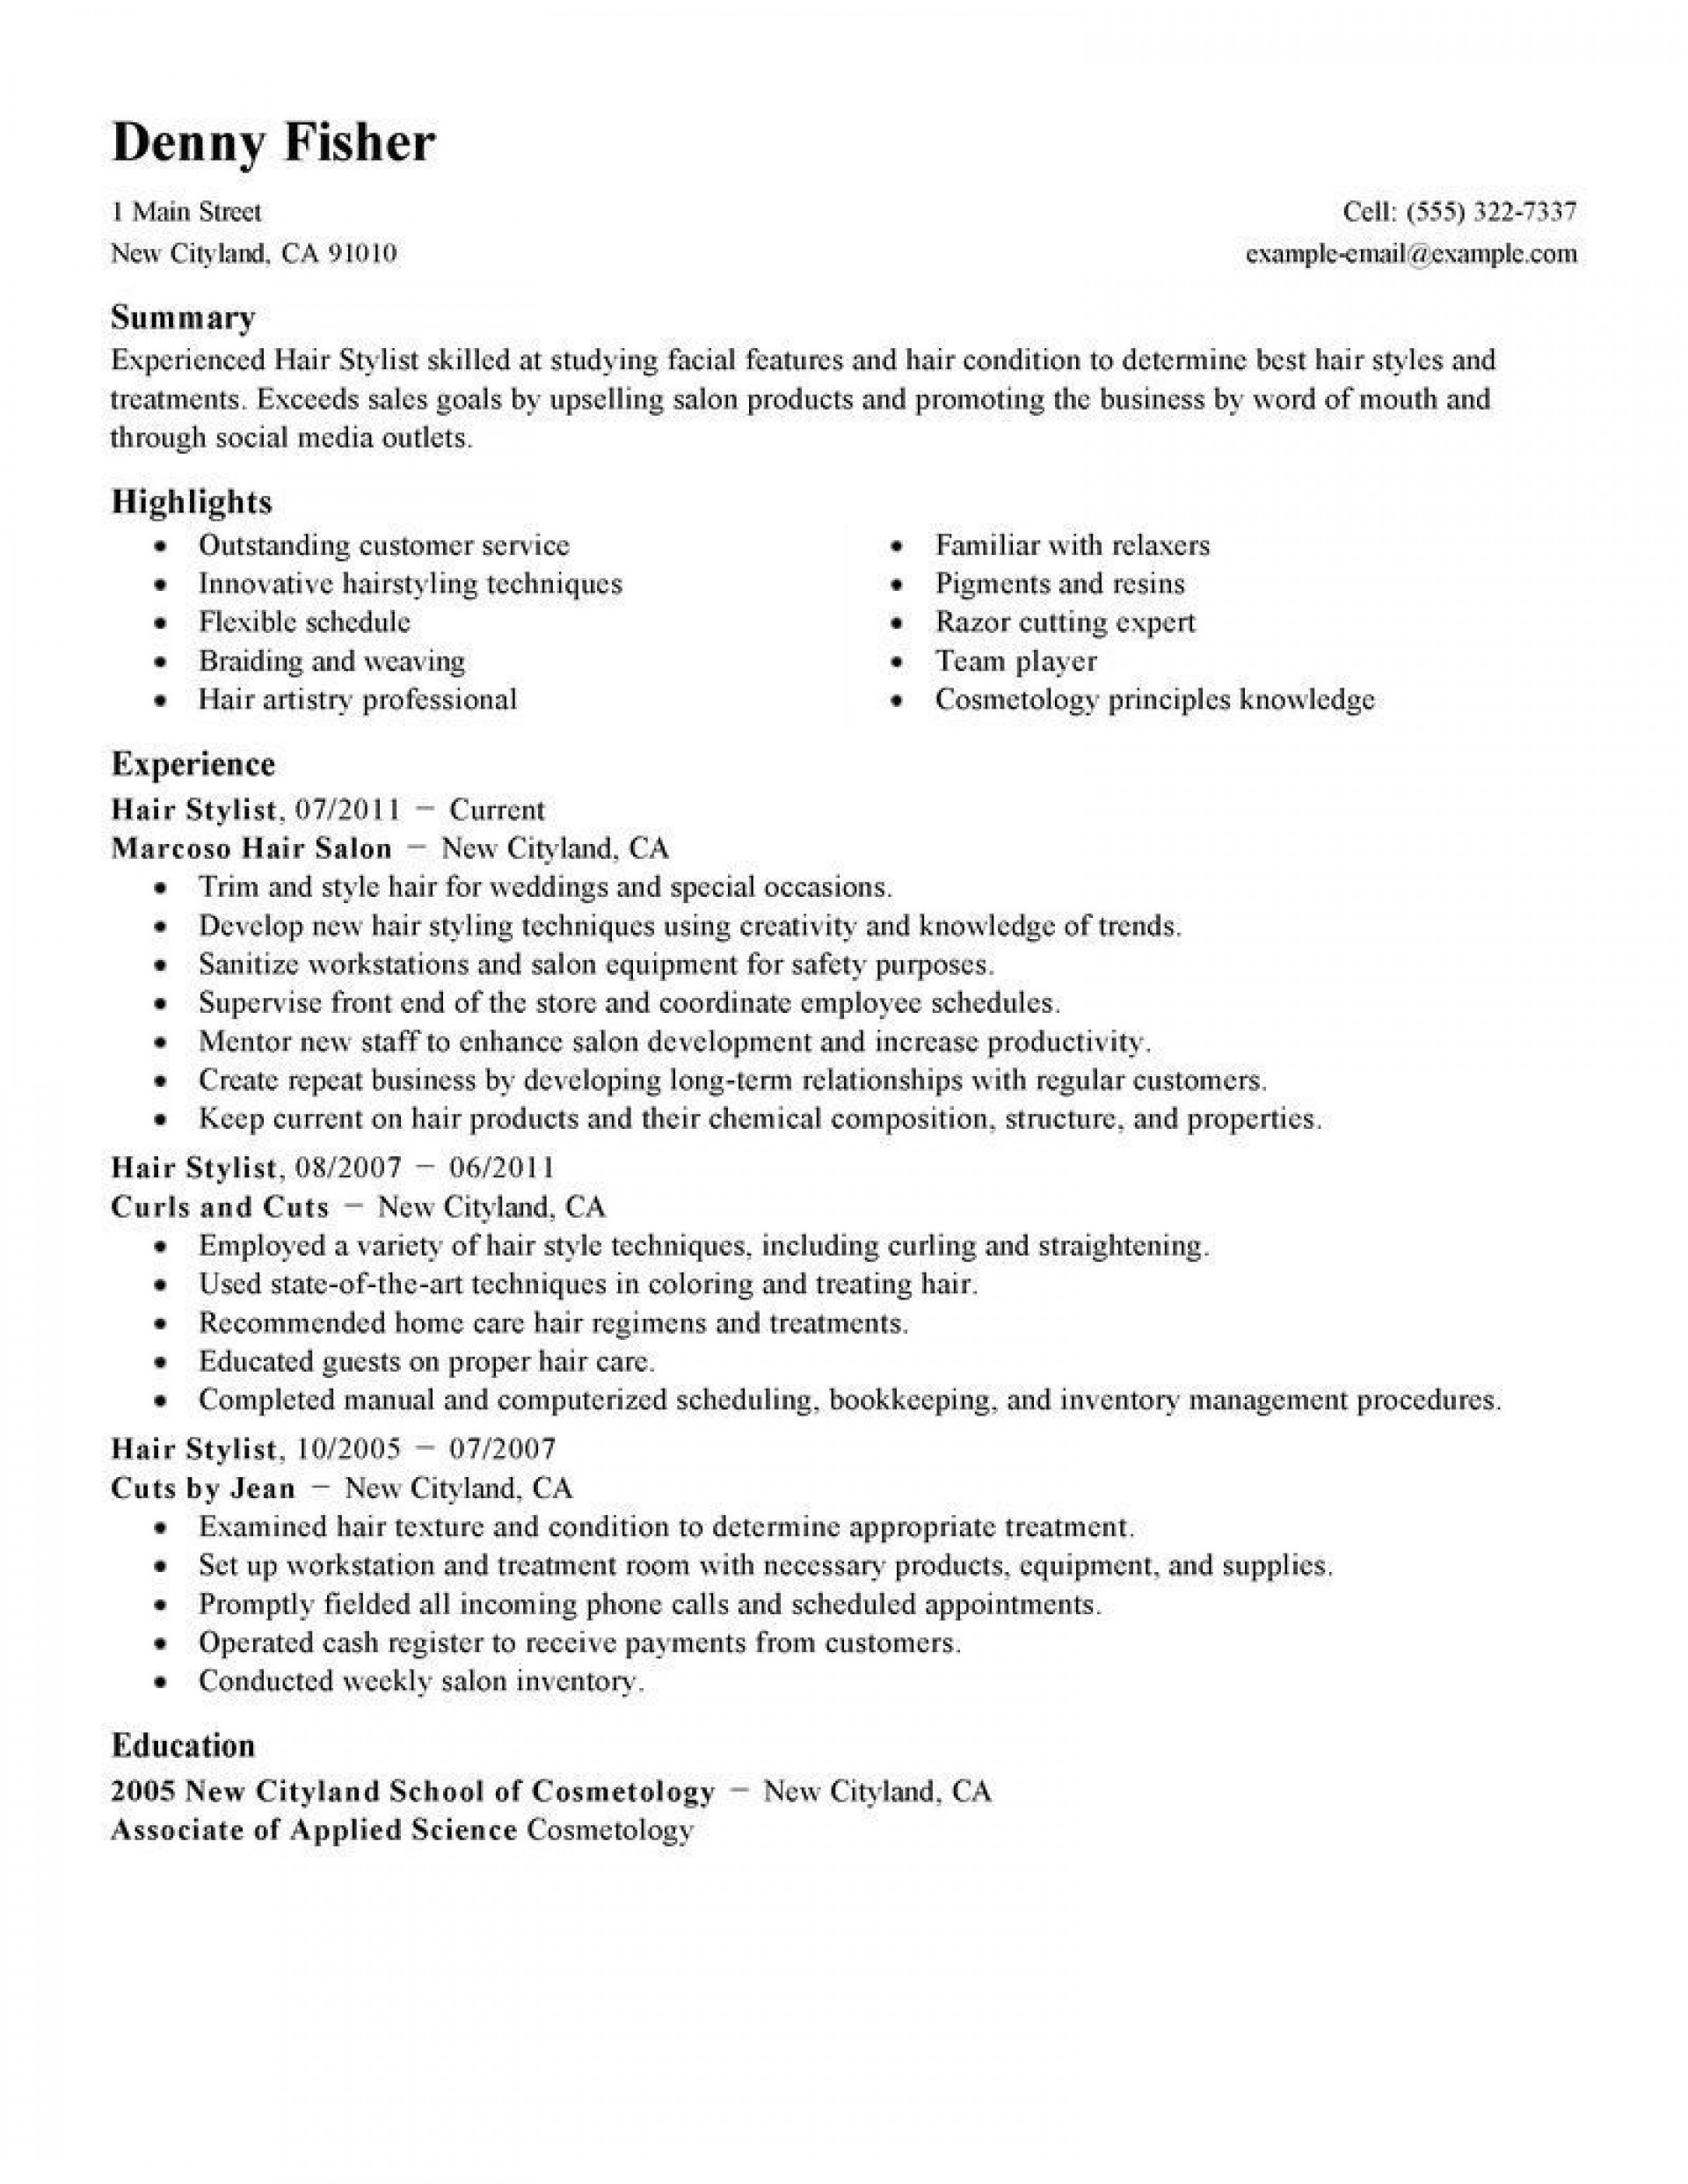 000 Staggering Hair Stylist Resume Template Sample  Word Free Download1920